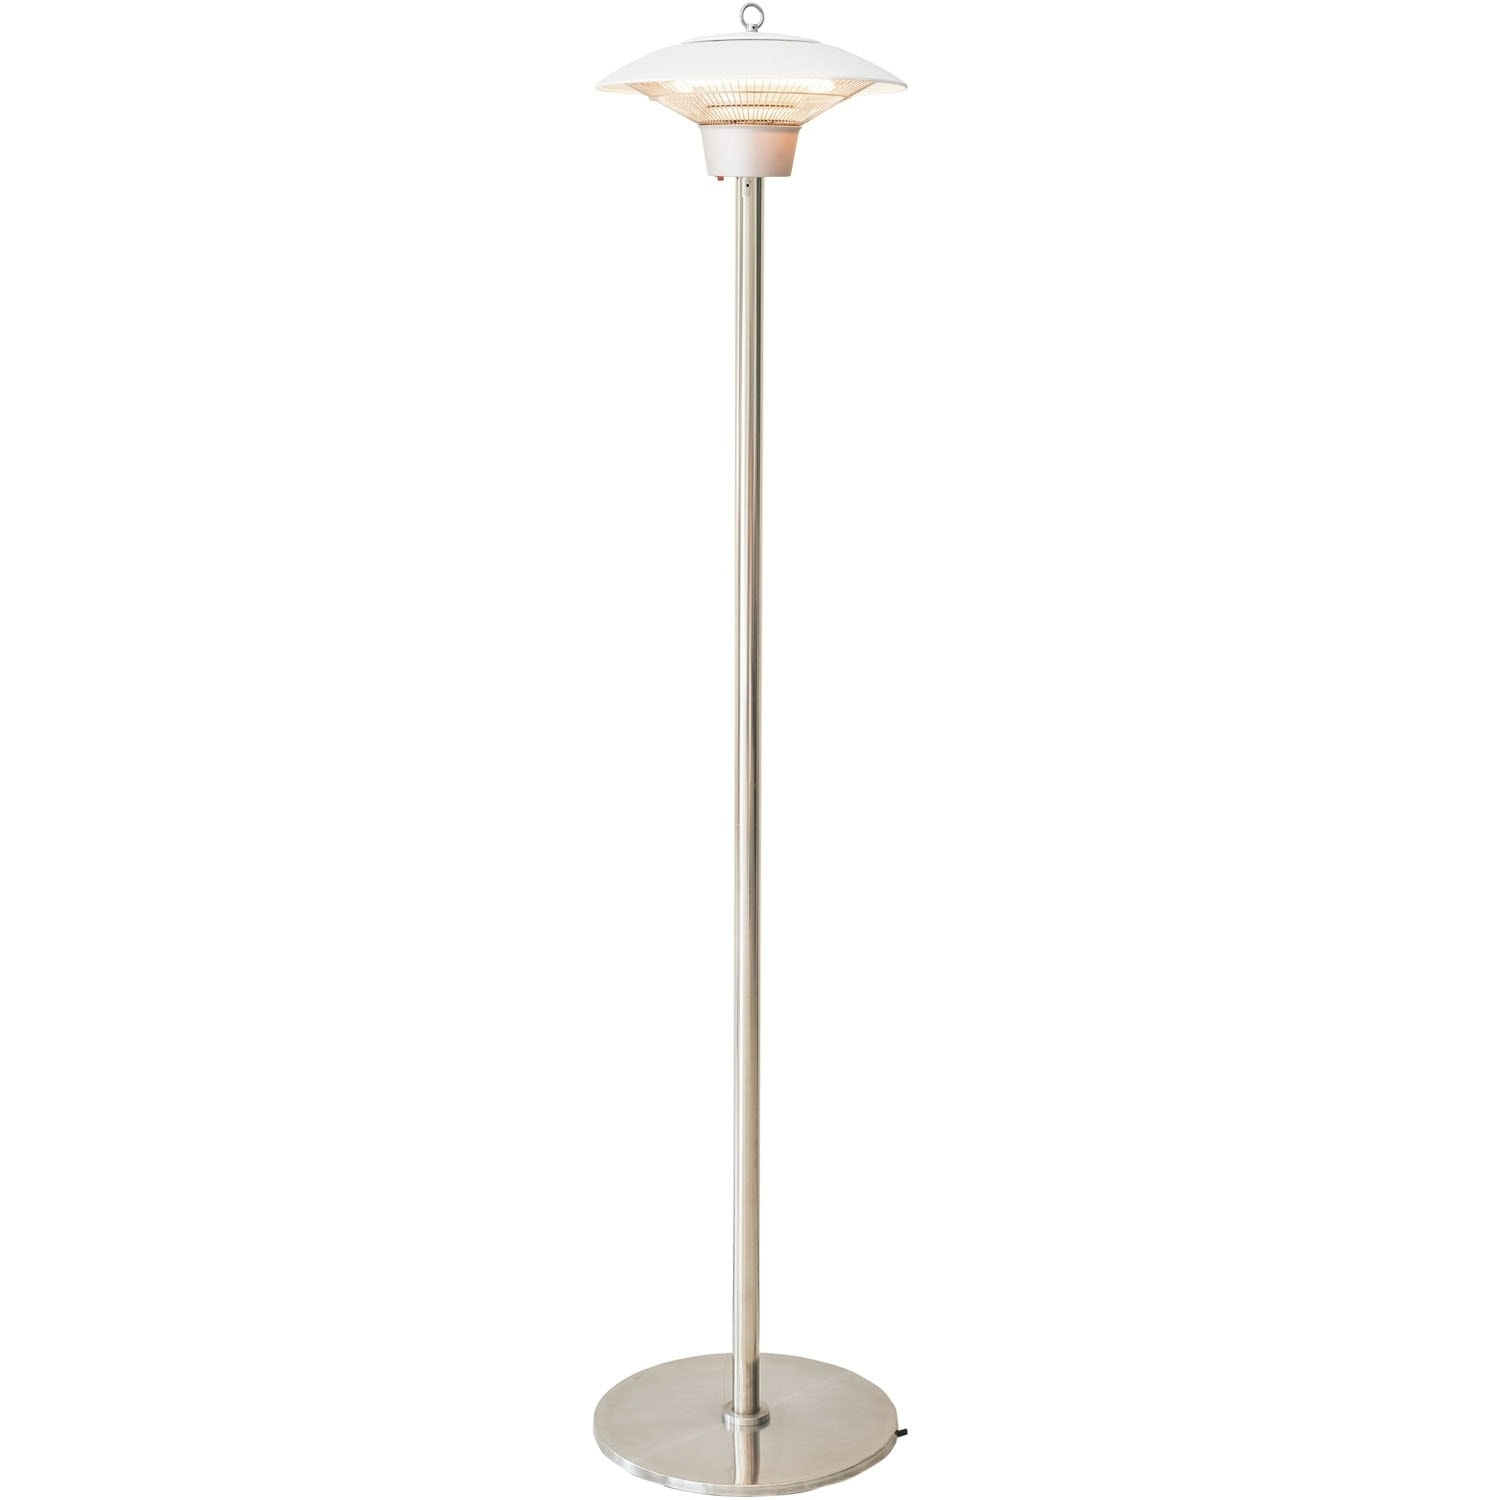 Shop Hanover Electric Halogen Infrared Stand Heat Lamp White On Sale Overstock 25982731